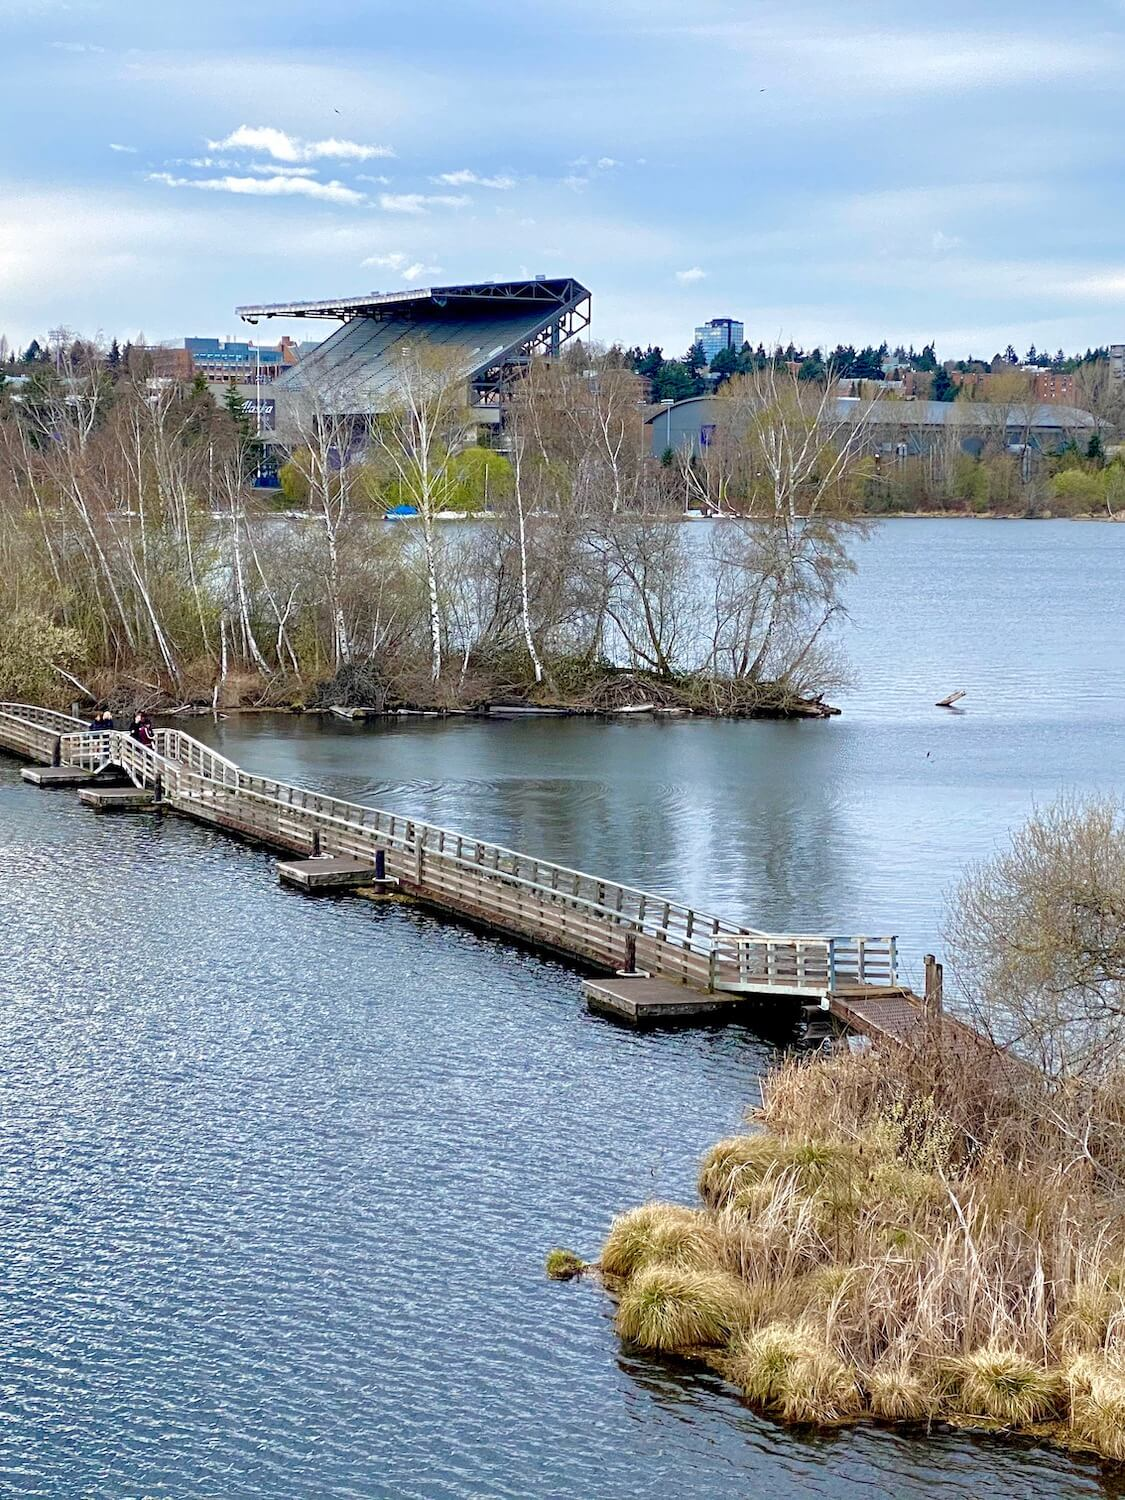 The floating plank system of this waterfront trail makes for a great Spring outdoor activity in Seattle because the textures of leafless trees in the background contrast the rich water with tiny waves.  The UW Husky Stadium rises in the background and two people walk over an arched bridge on the floating system of wood railings and concrete paths.